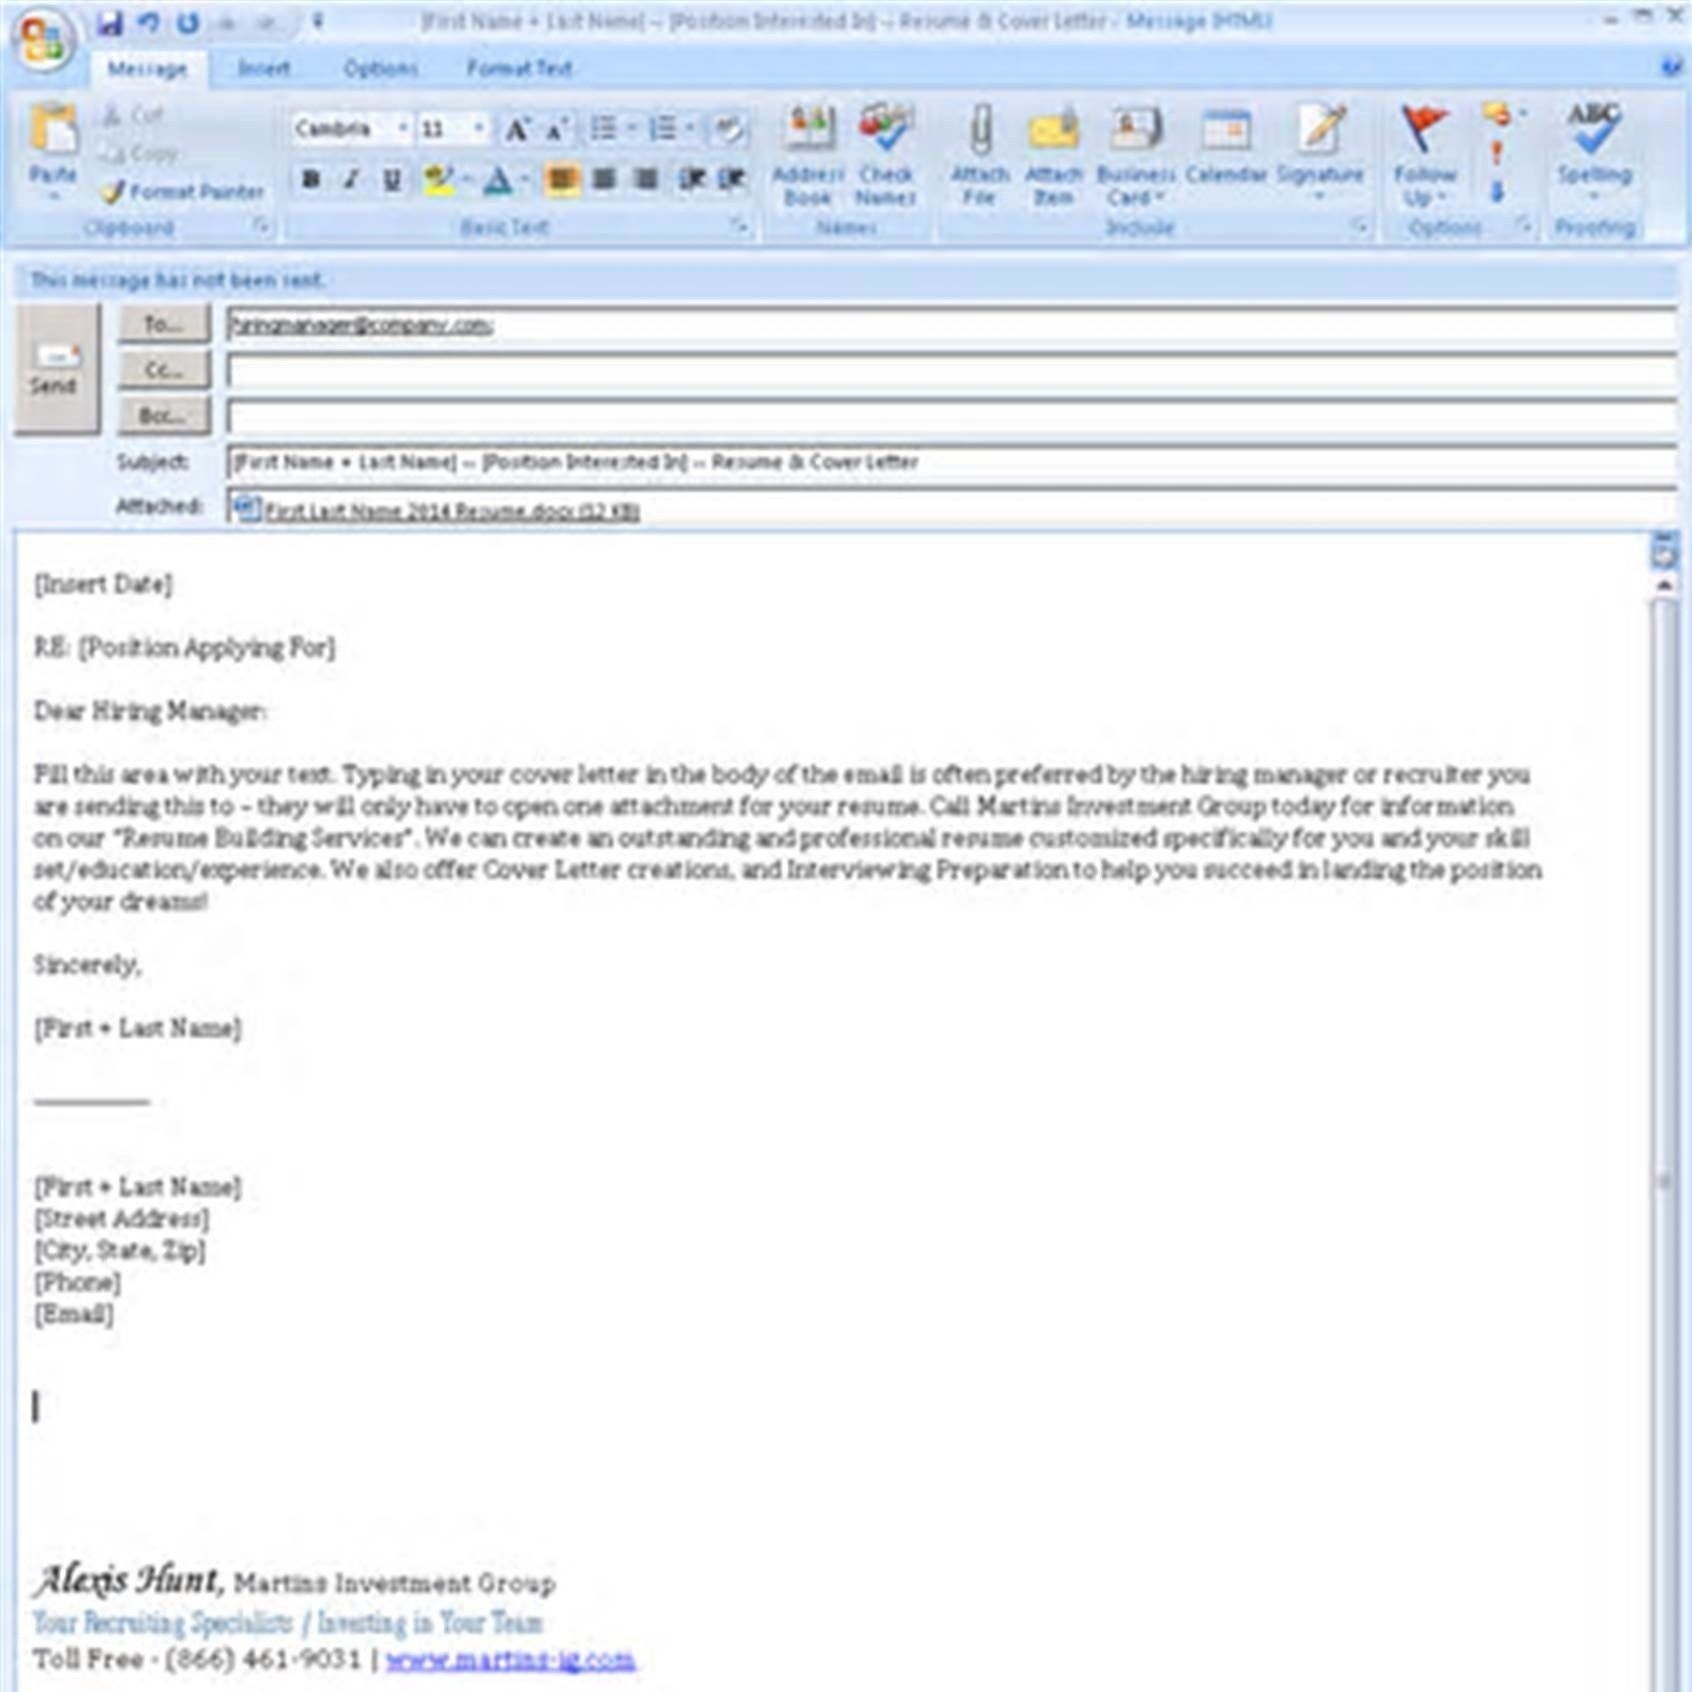 Simple Email Cover Letter Template | 1-Cover Letter Template ...